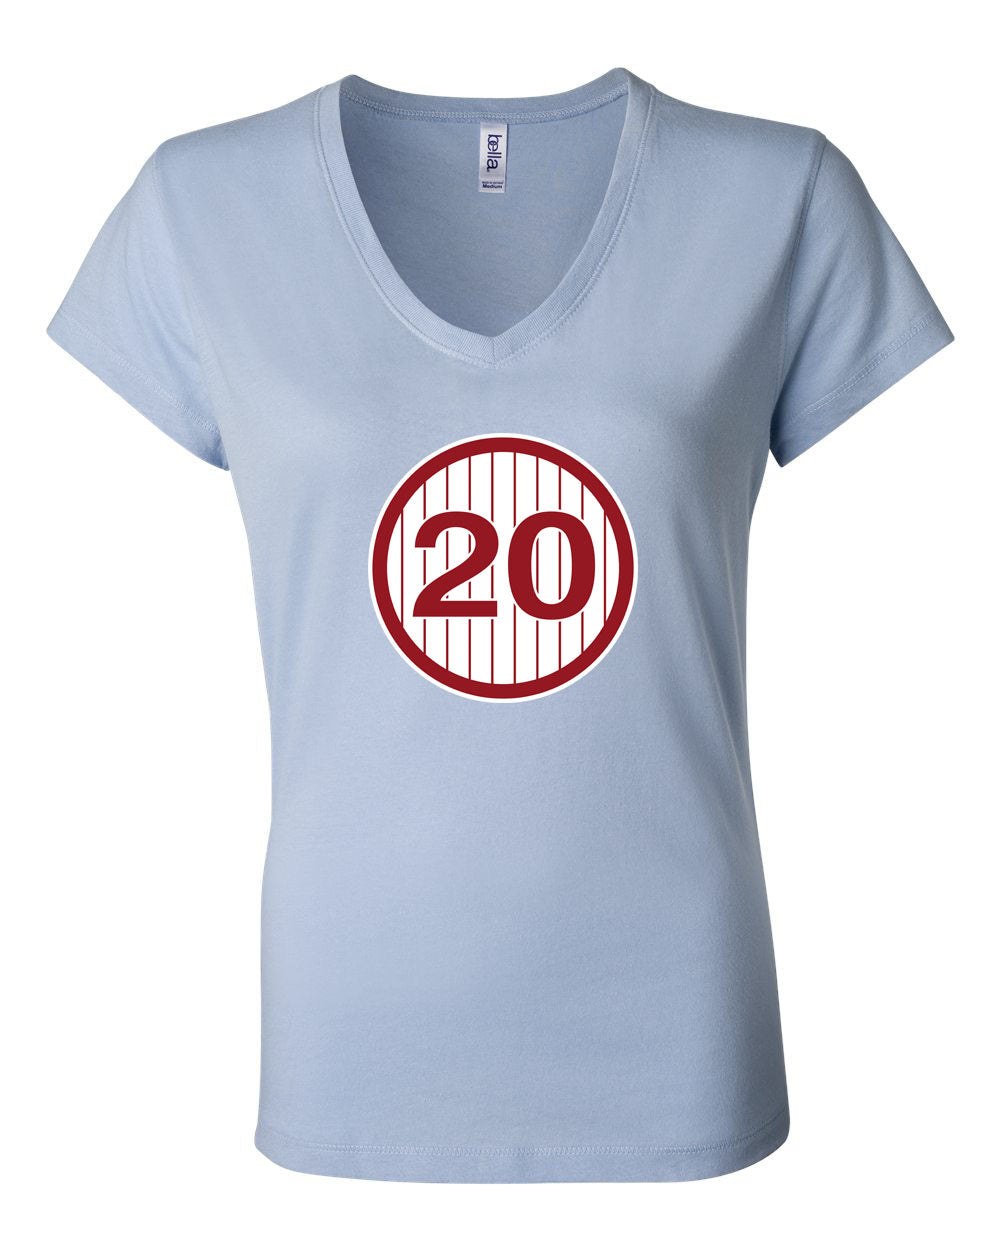 #20 LADIES Junior Fit V-Neck